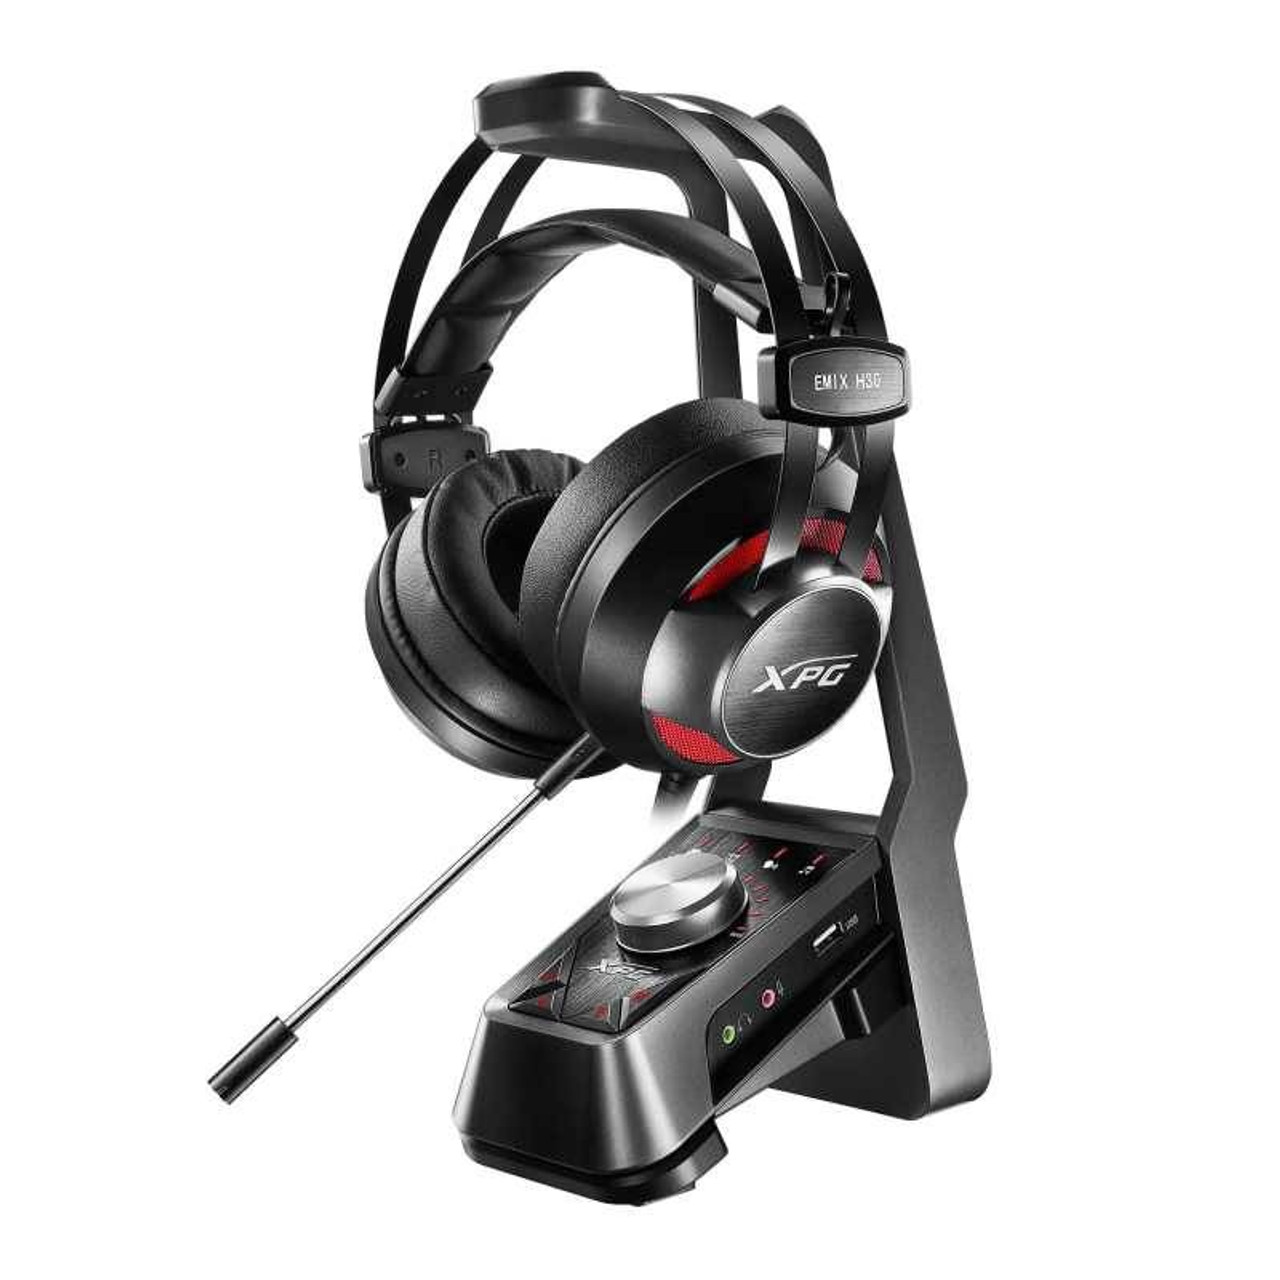 Image for Adata XPG EMIX H30 Virtual 7.1 Gaming Headset and XPG SOLOX F30 Amplifier CX Computer Superstore